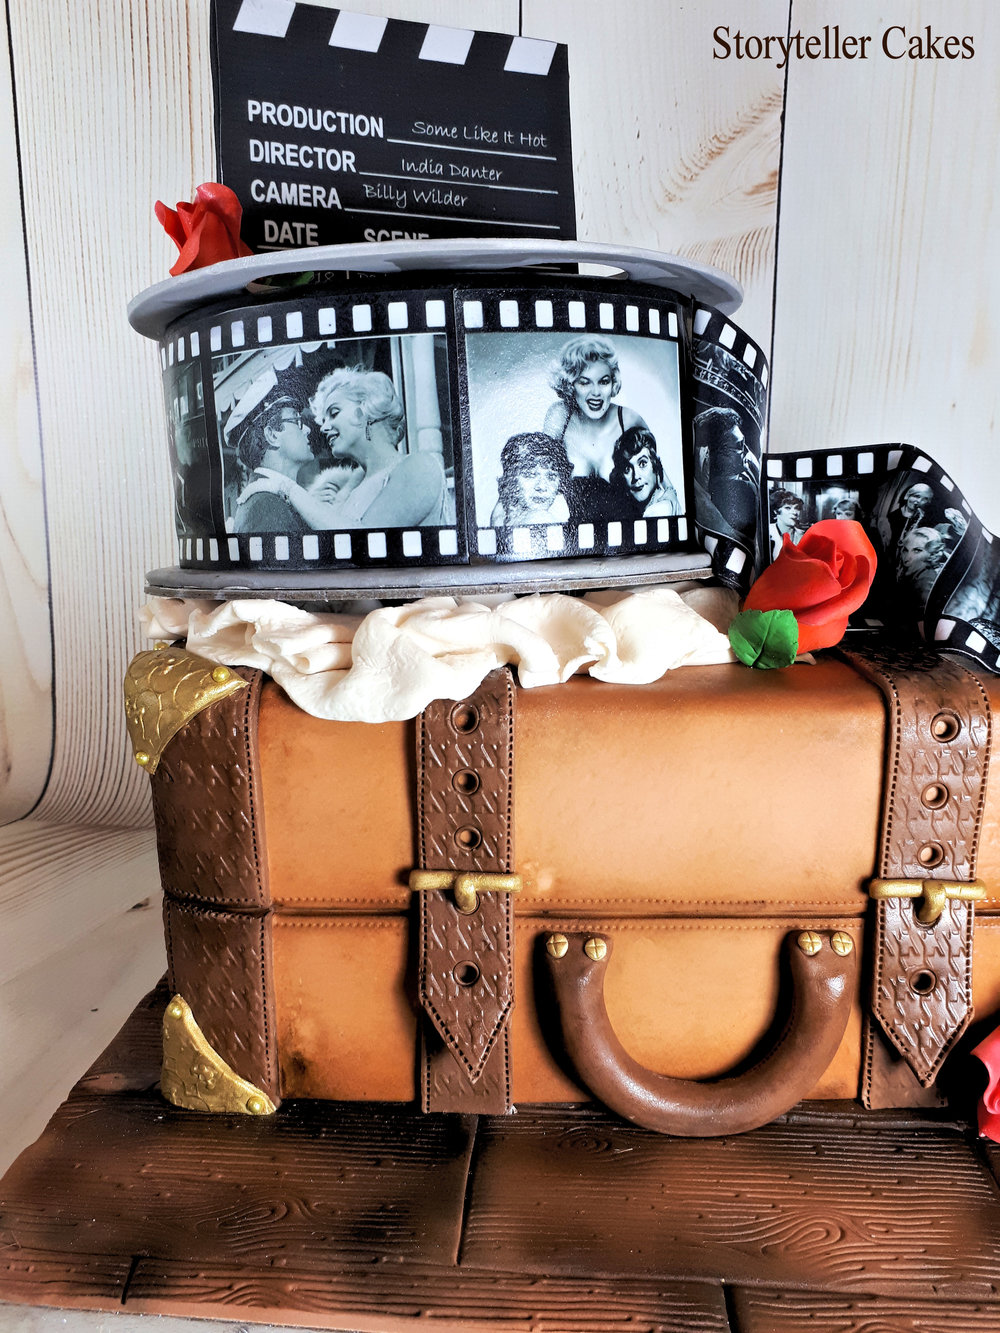 Vintage Suicase & Film Reel Cinema birthday cake 4.jpg